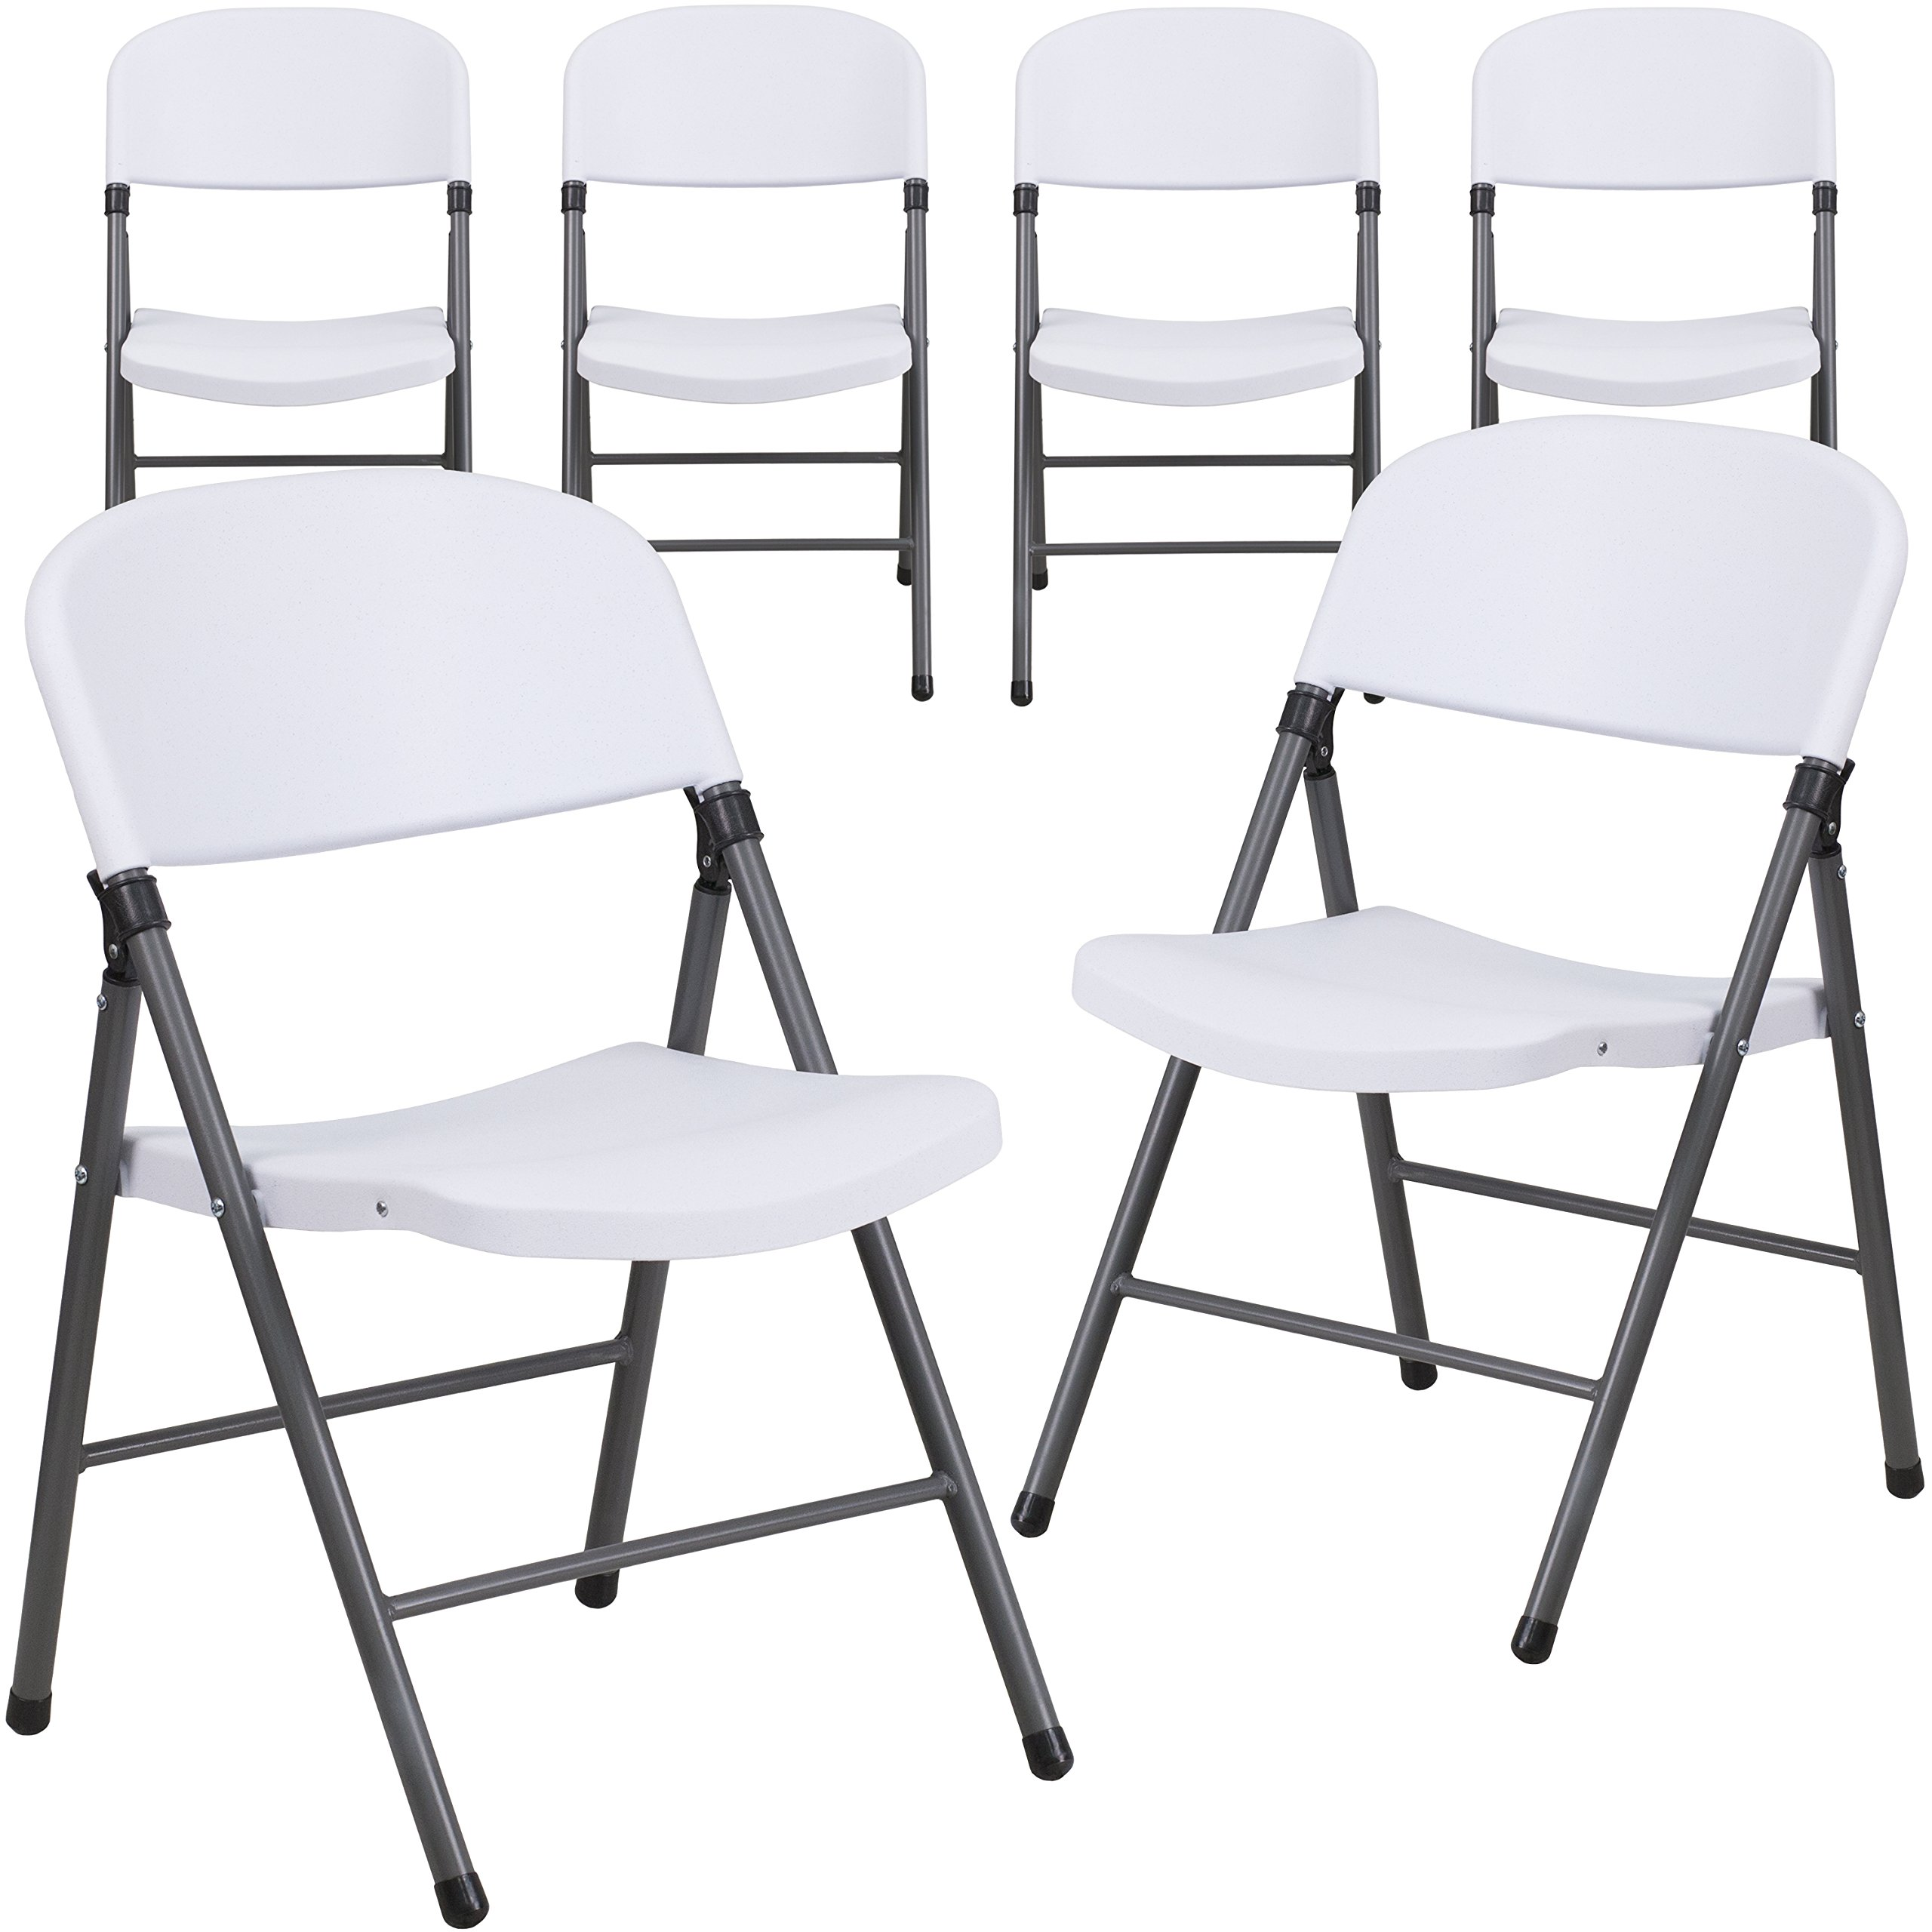 Flash Furniture 6 Pk. HERCULES Series 330 lb. Capacity Granite White Plastic Folding Chair with Charcoal Frame by Flash Furniture